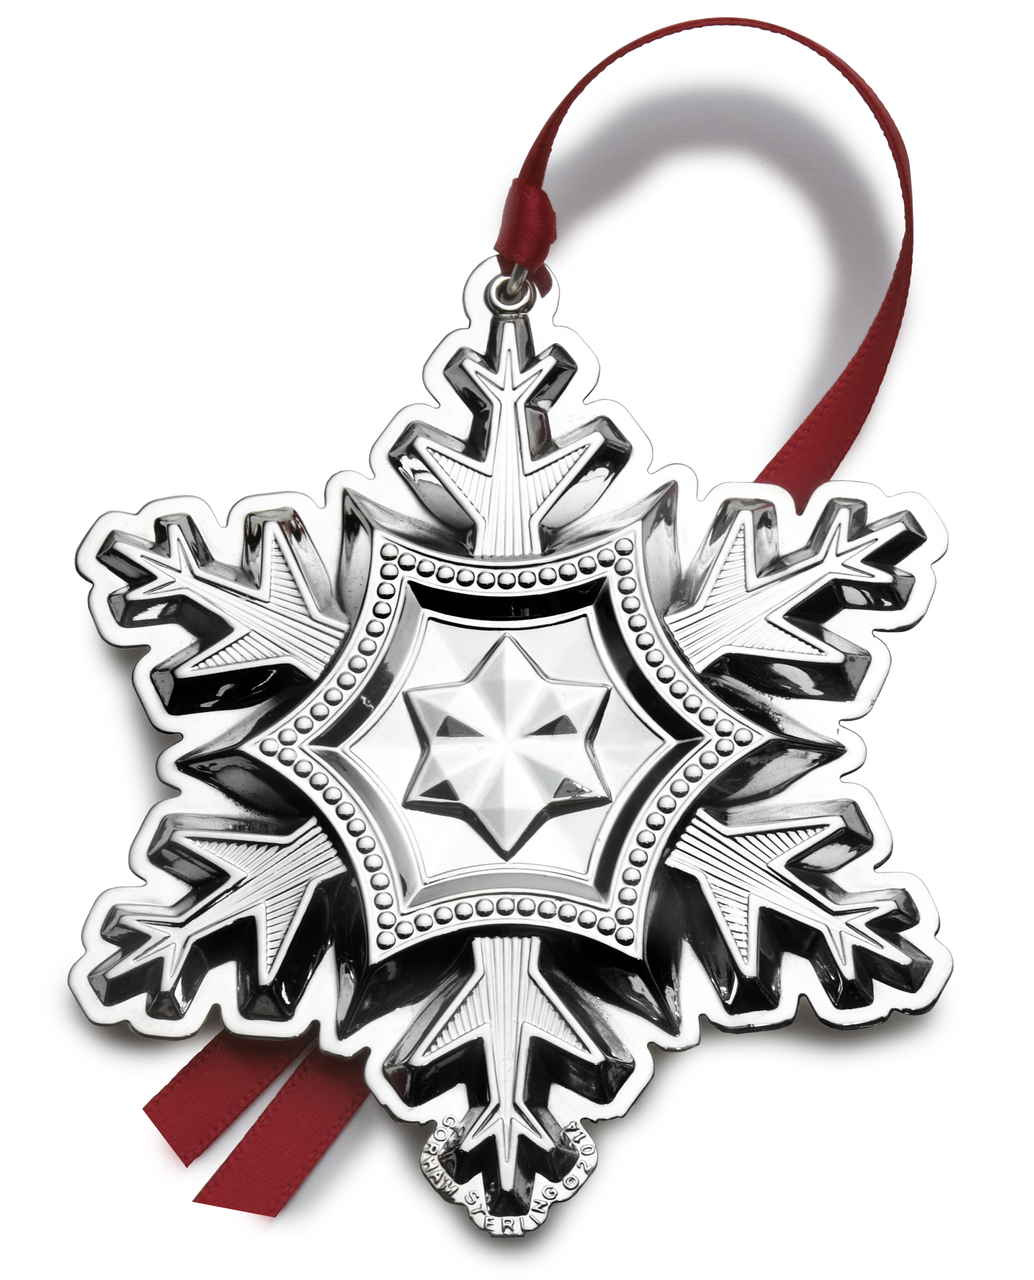 Gorham 2014 | Snowflake 45th Edition 5127521 - Sterling Silver | $150.00 Made in the USA